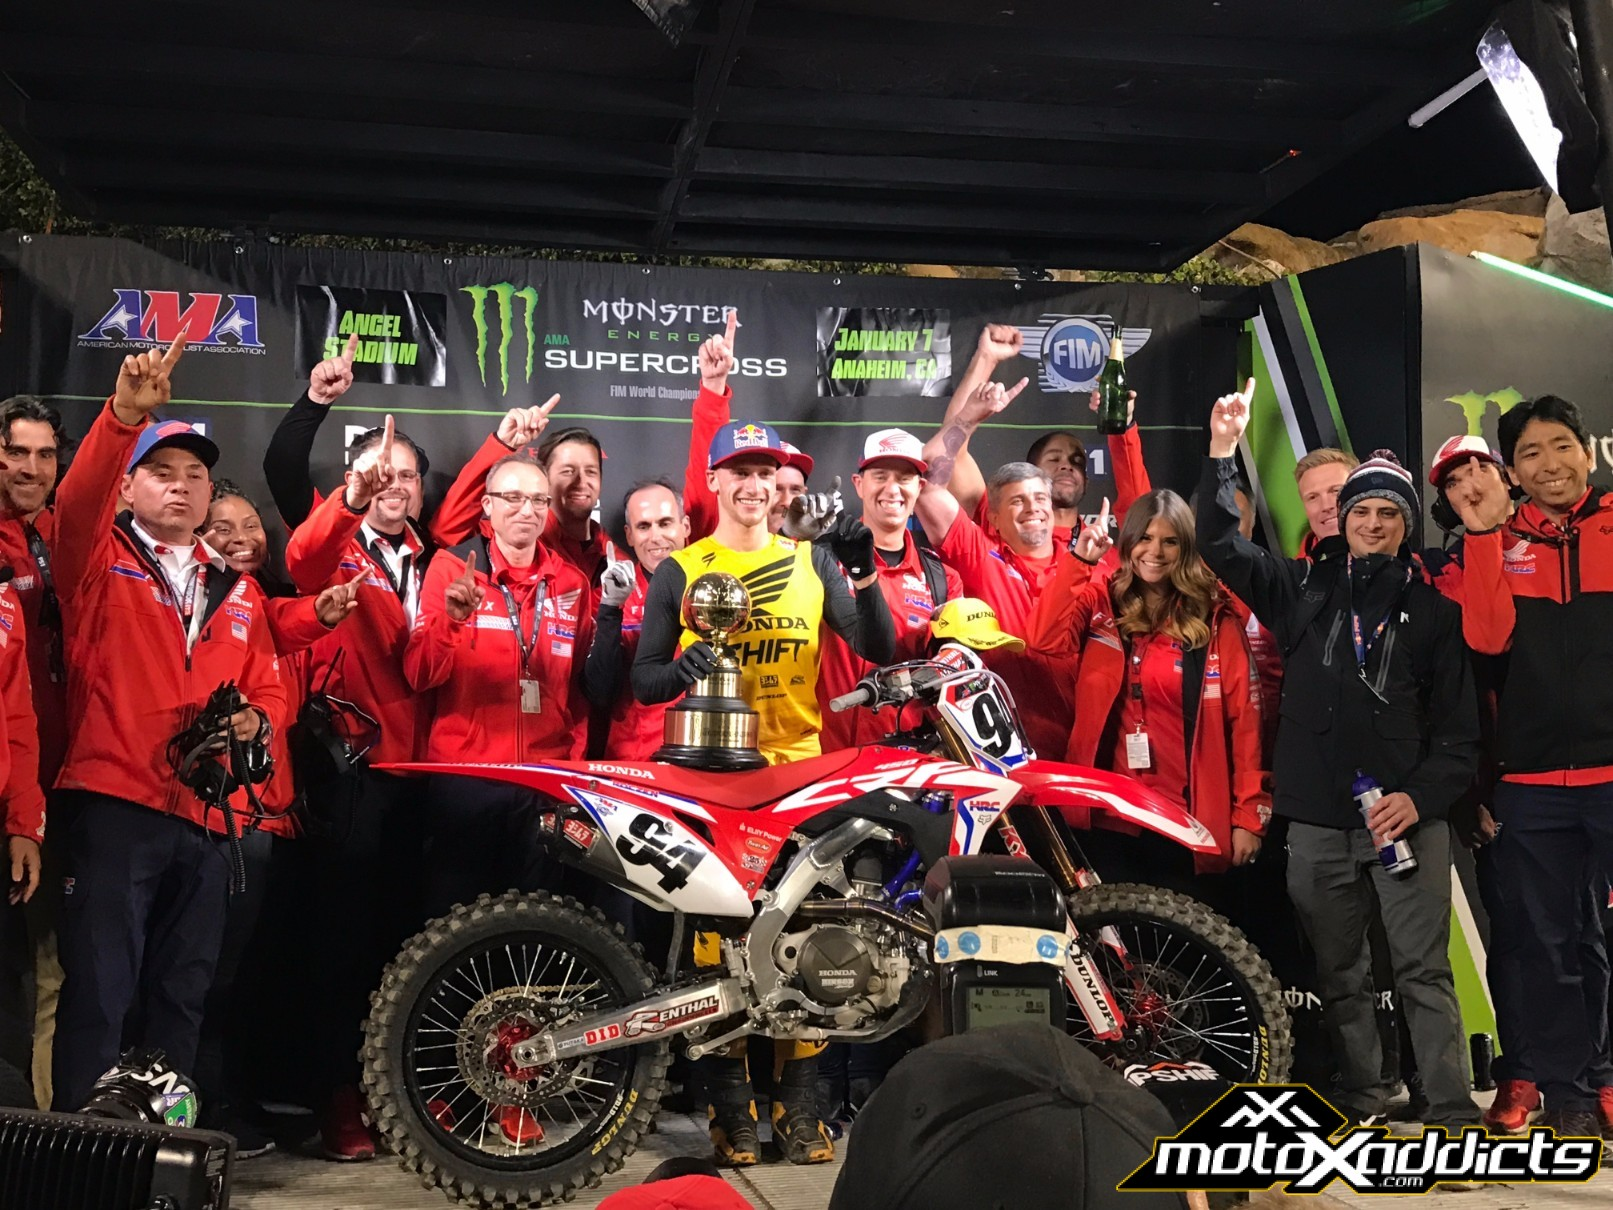 Kenny and HRC / Honda celebrated the beginning of what they hope will be the first of many SX wins and Championships together. Photo: Dan Lamb